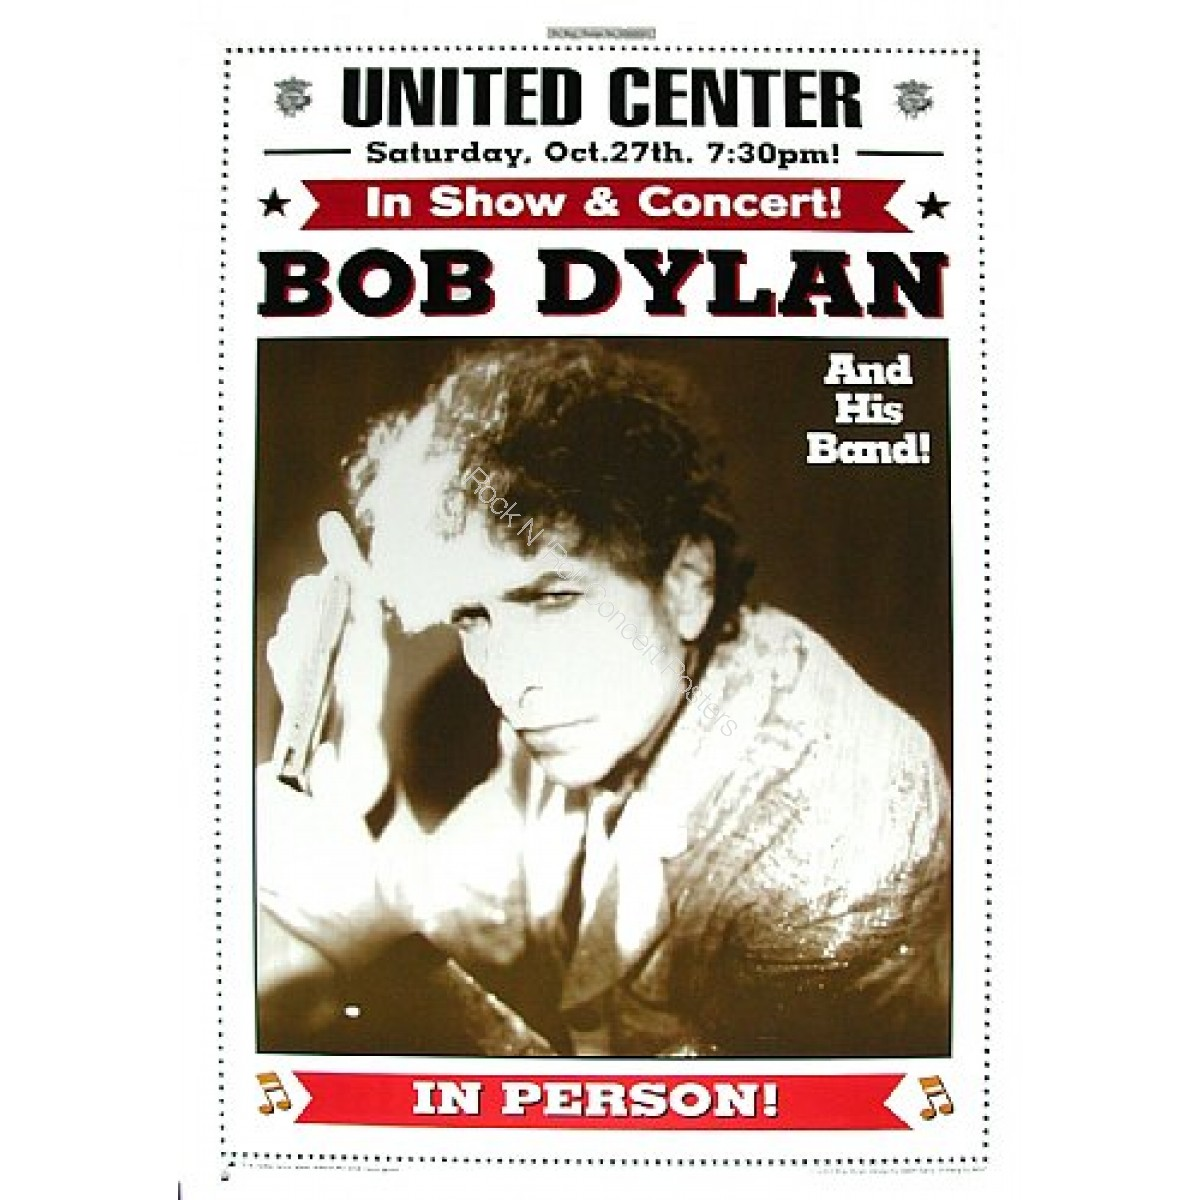 Bob Dylan & His Band @ The United Center